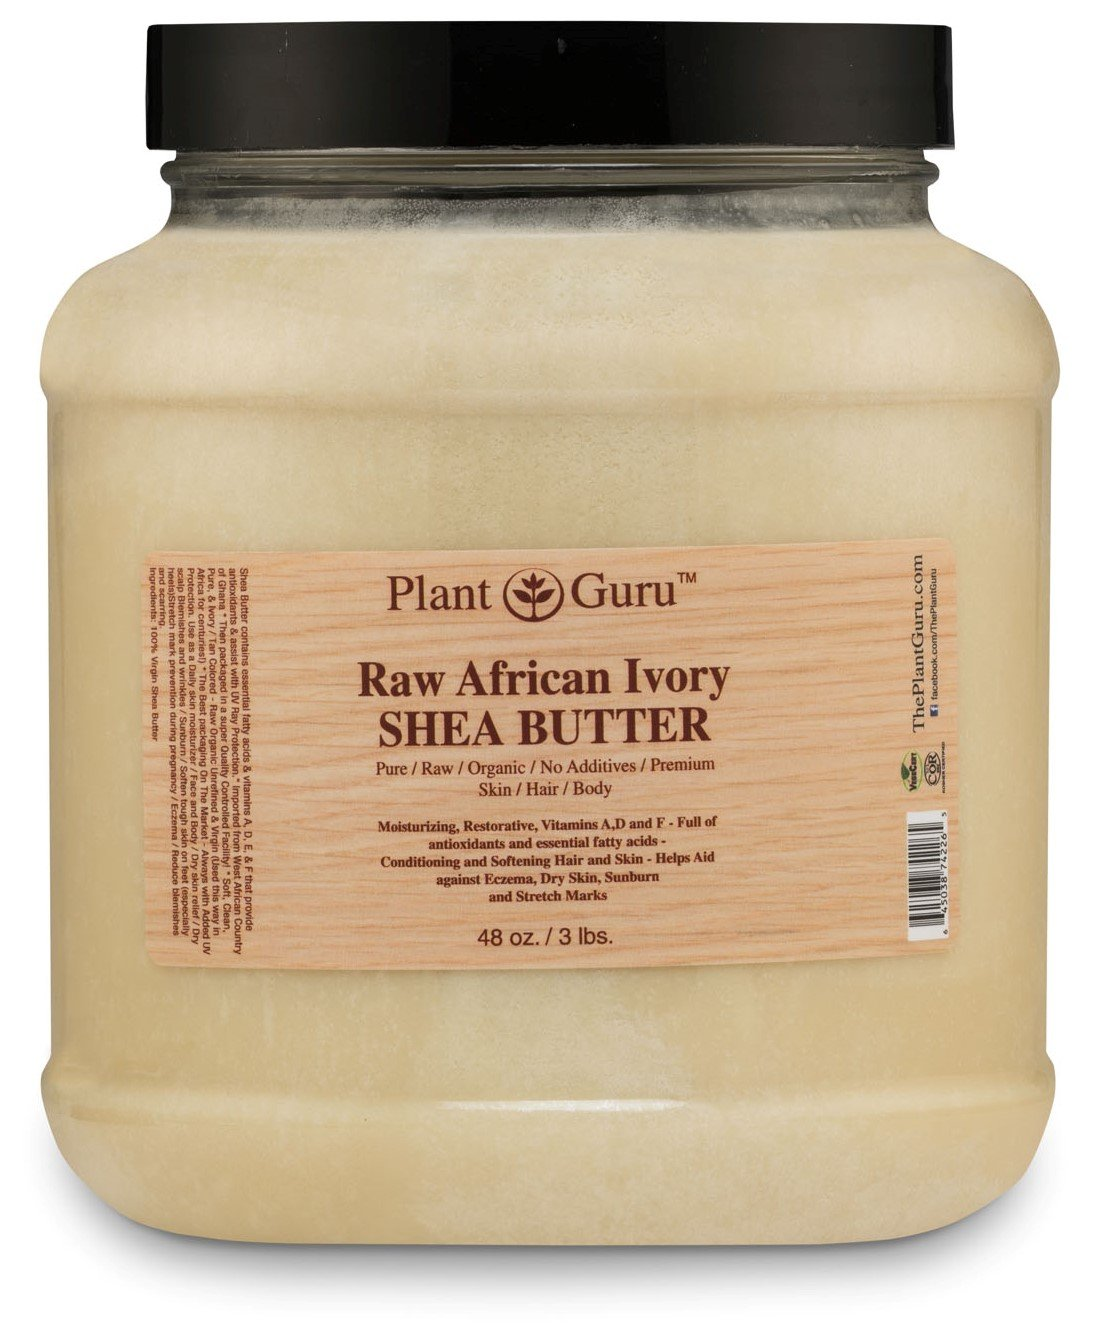 Raw African Shea Butter 3 lbs Bulk Unrefined 100% Pure Natural Ivory / White Grade A DIY Body Butters, Lotion, Cream, lip Balm & Soap Making Supplies, Eczema & Psoriasis Aid, Stretch Mark Product